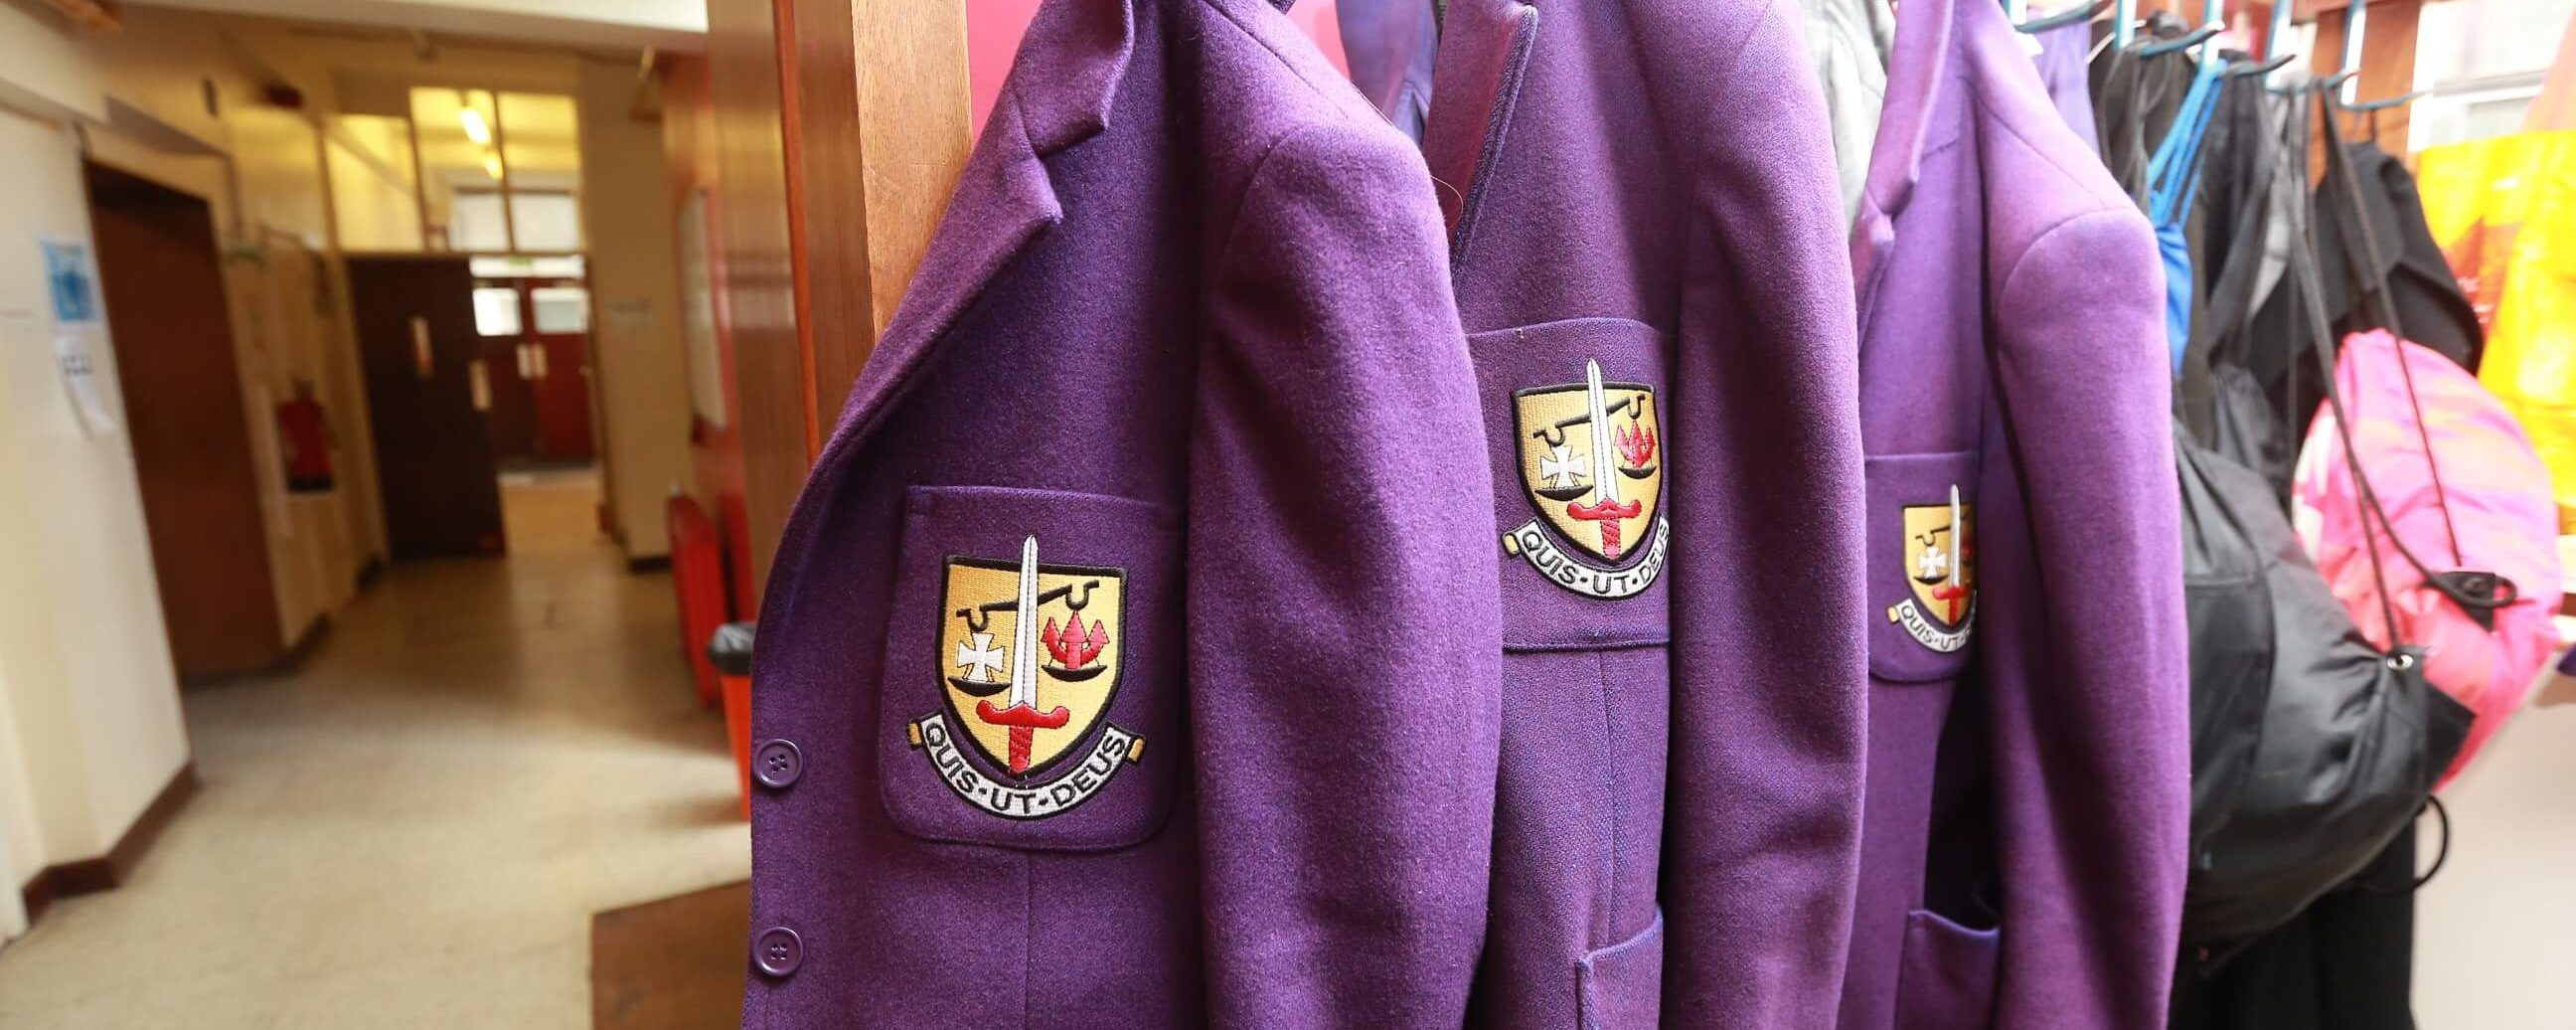 URGENT | JOB | Teacher of Latin and Classical Civilisation, St Michael's Catholic Grammar School